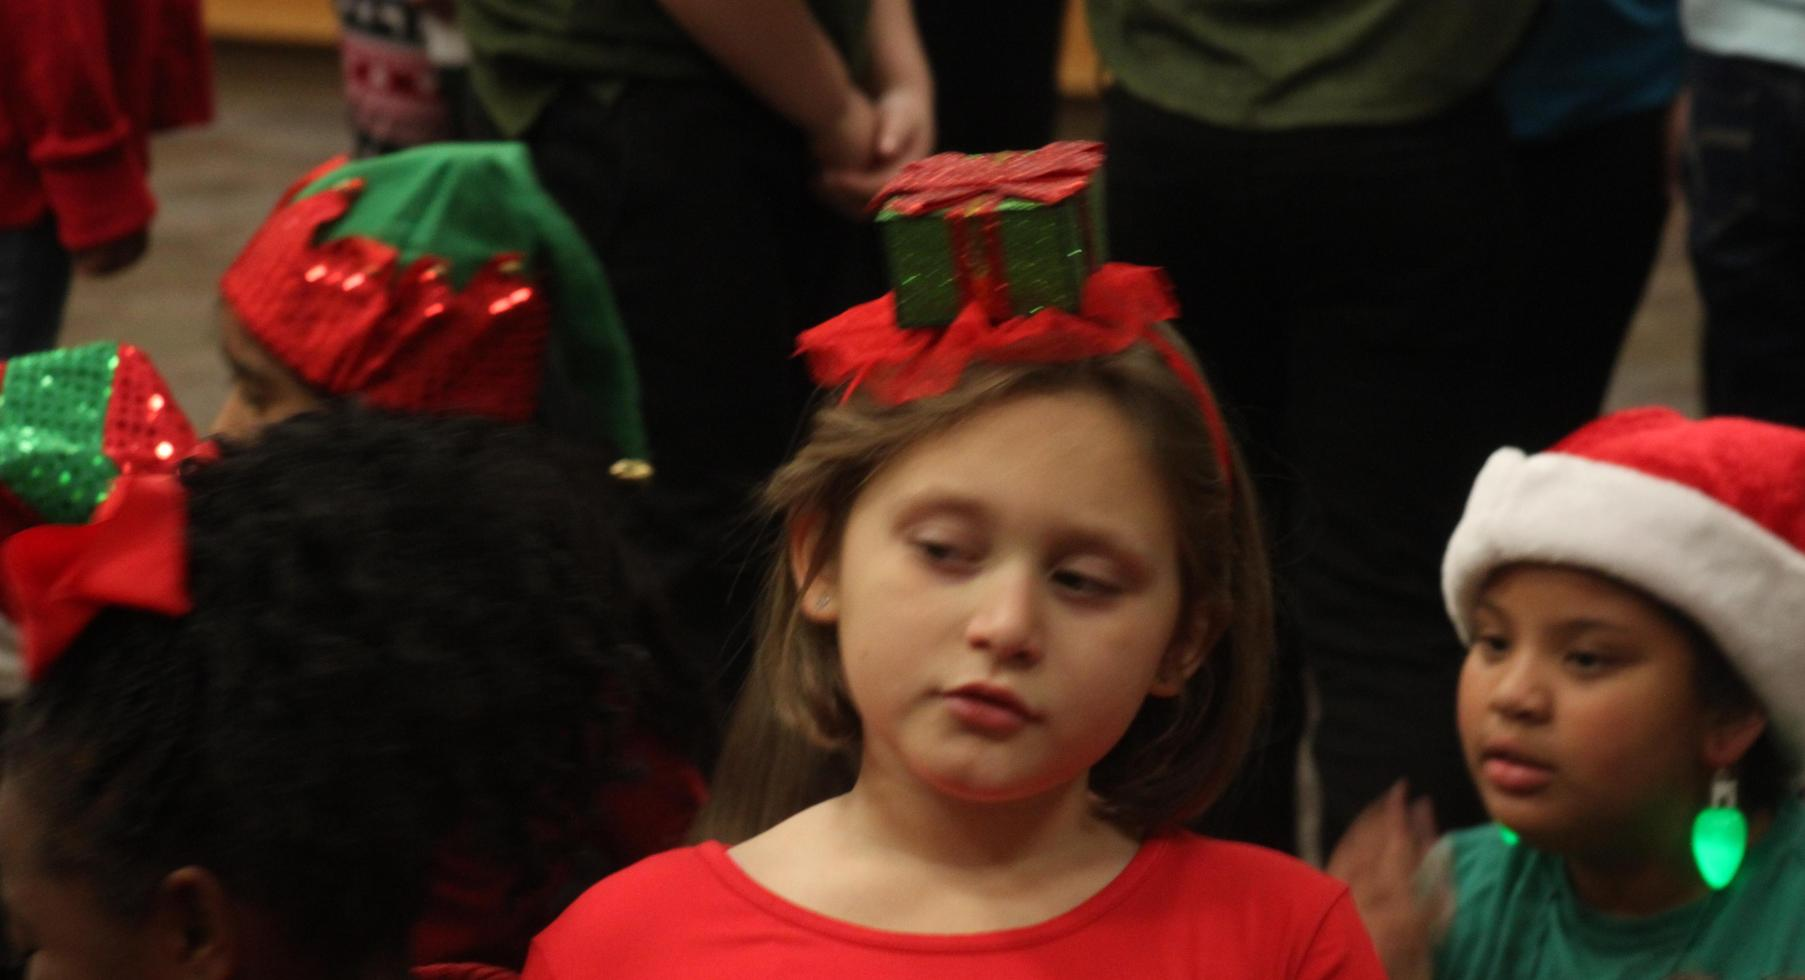 Waiting to sing in the Christmas Program.